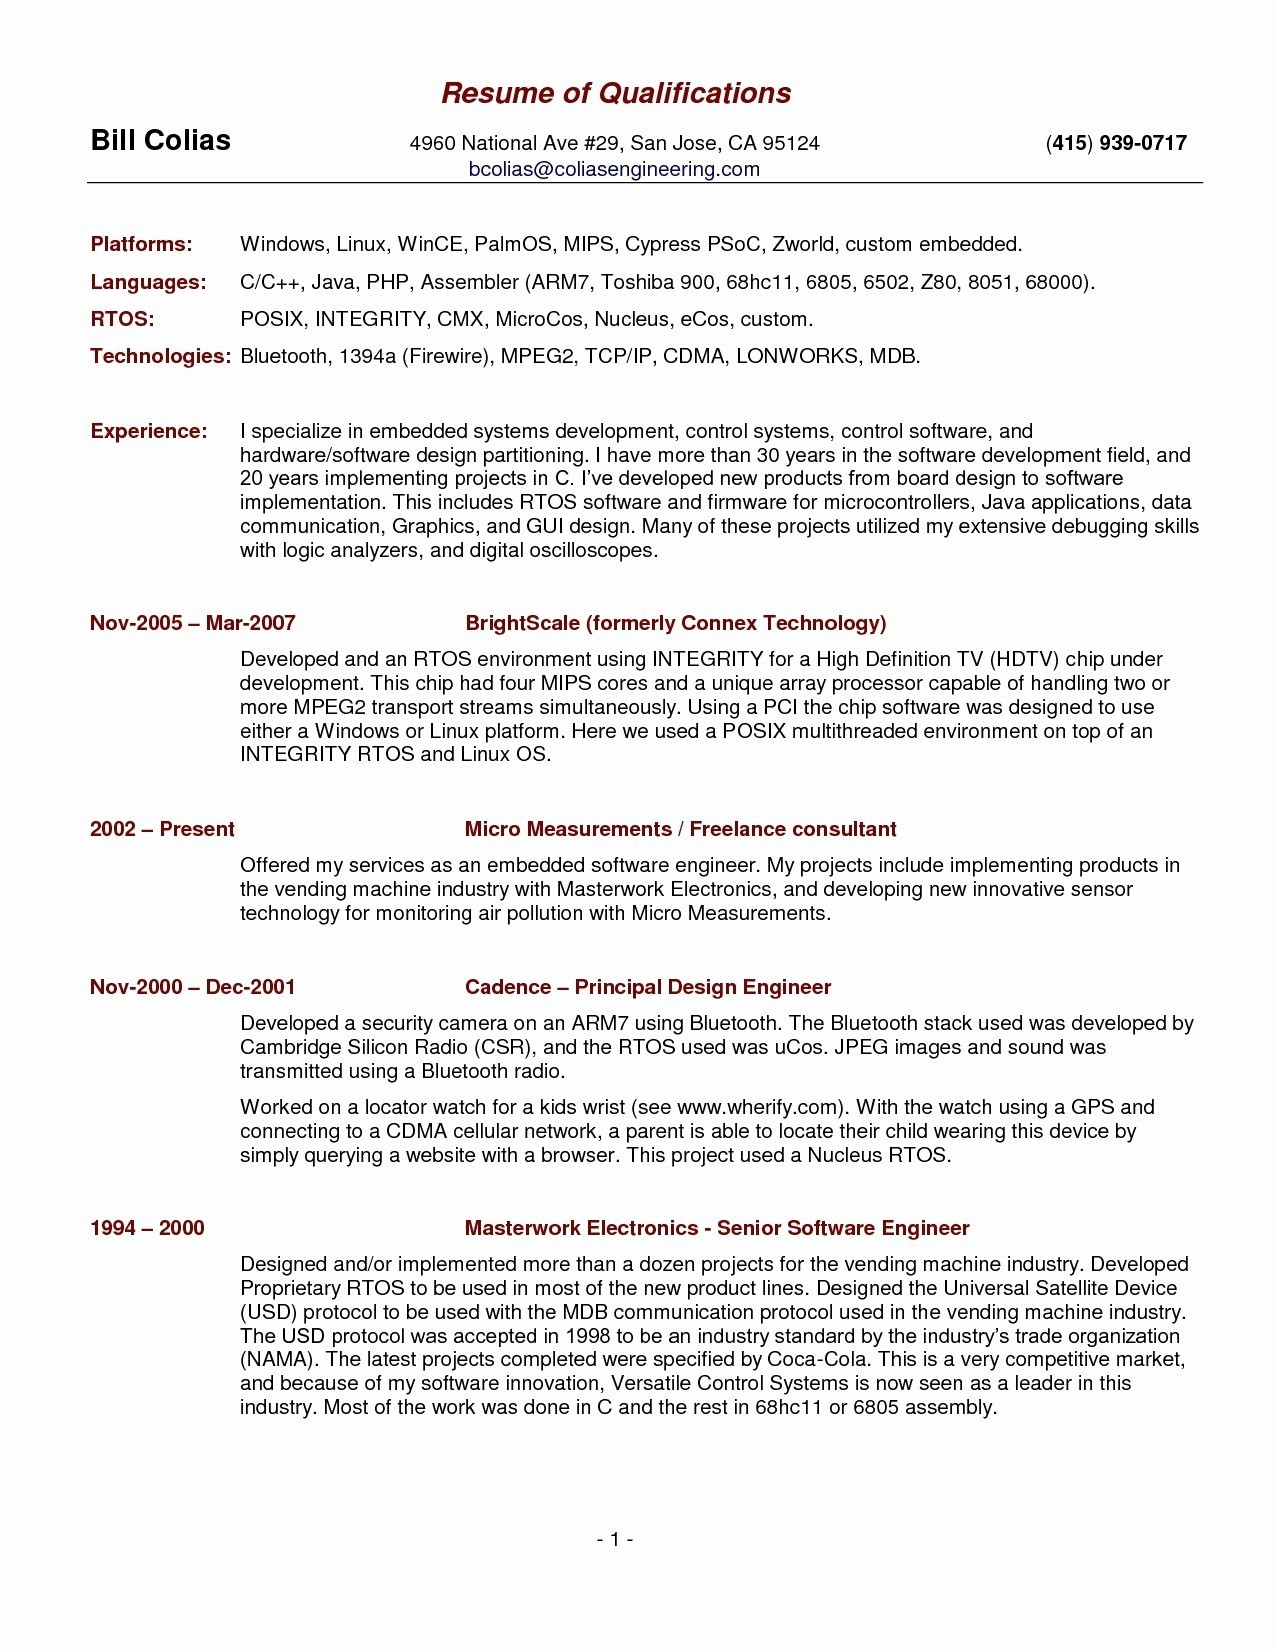 Resume Template Pinterest - Industrial Design Resume Fresh 44 Best Resume Templates